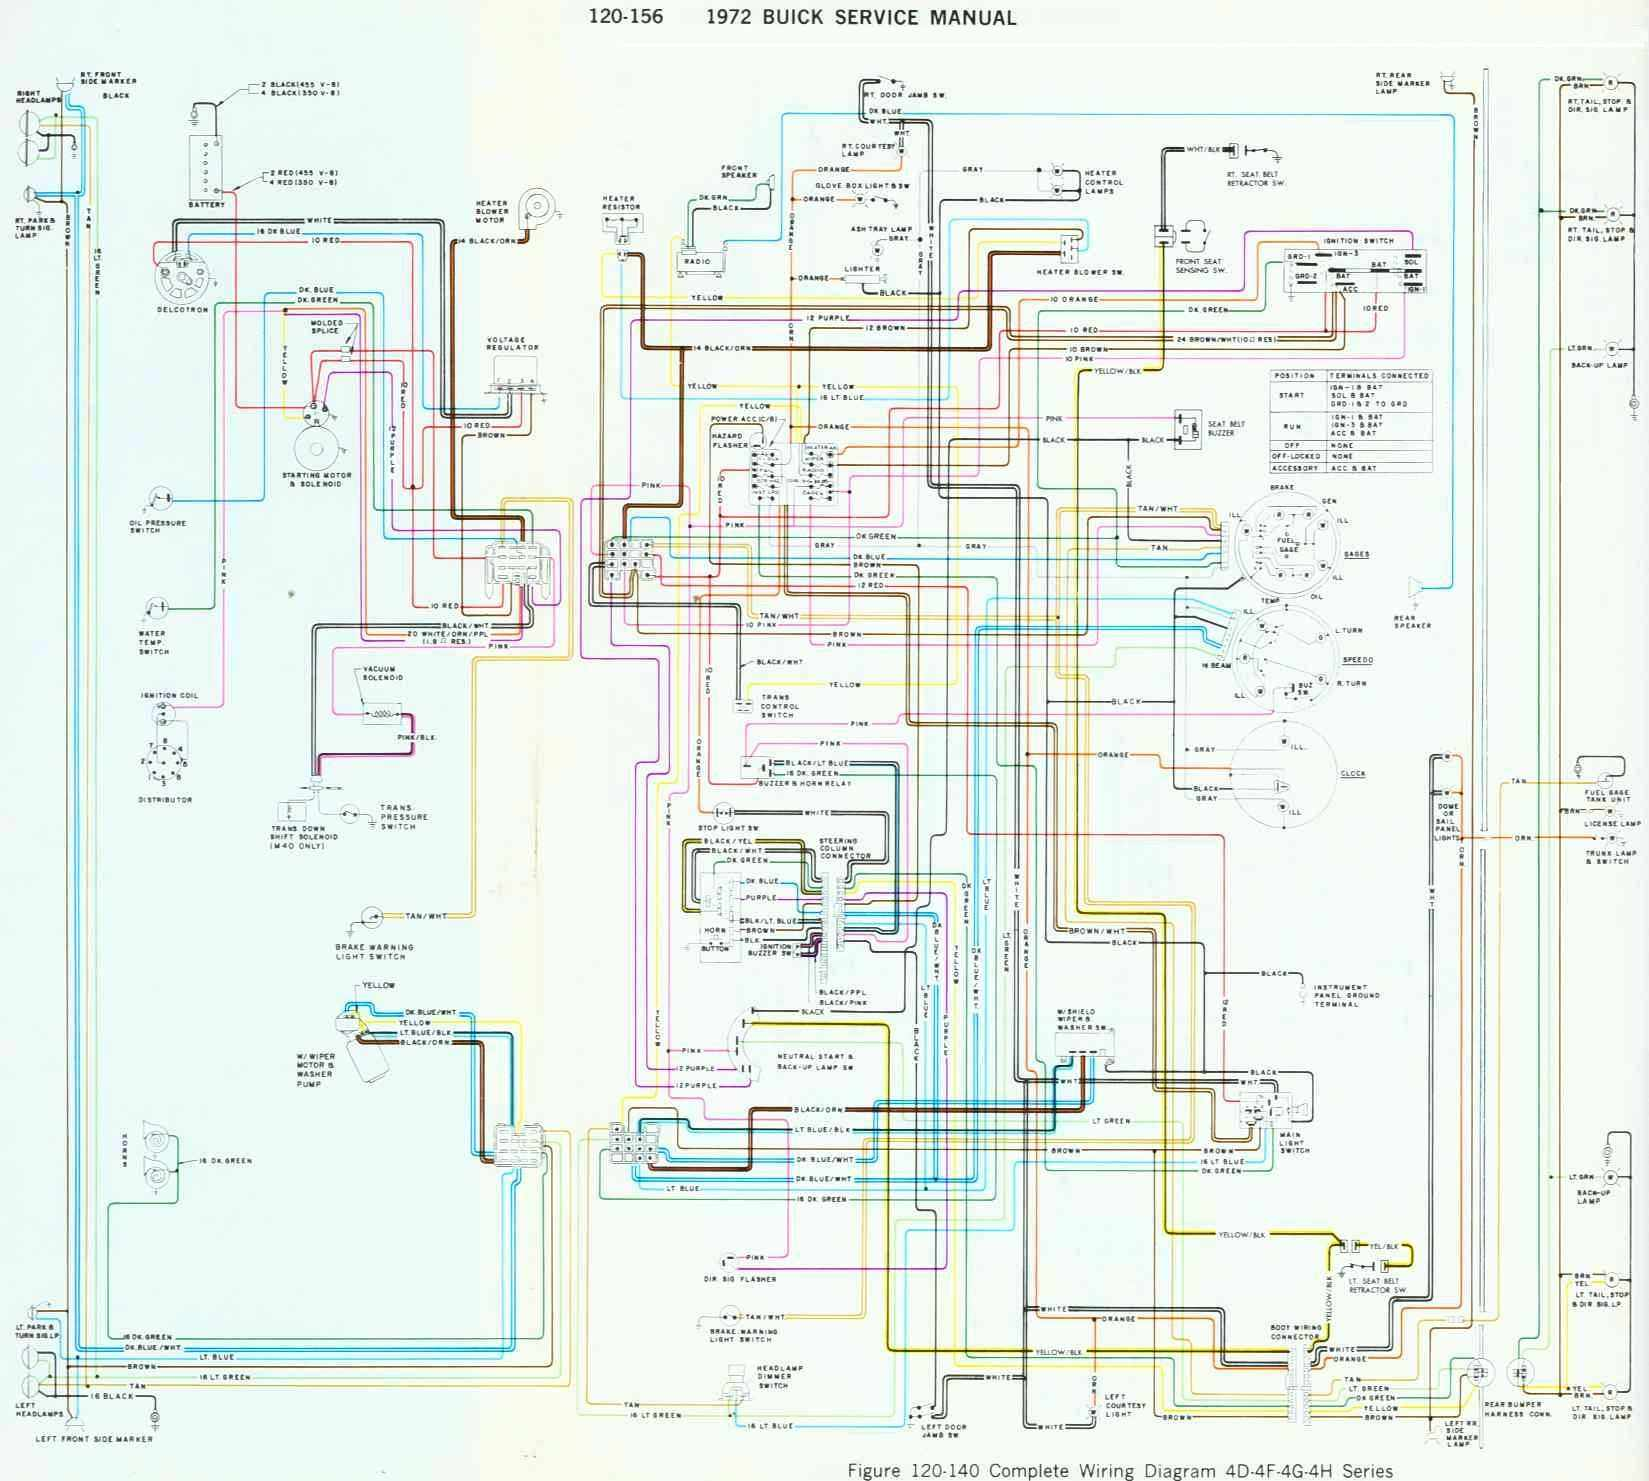 1967 Buick Wiring Diagram | Wiring Diagram on 1969 chevy chevelle wiring diagram, 1969 pontiac gto wiring diagram, 1969 porsche 911 wiring diagram, 1969 chevy corvette wiring diagram, 1987 buick grand national wiring diagram, 1969 pontiac lemans wiring diagram, 1969 gmc truck wiring diagram, 1969 chevy nova wiring diagram, 1969 chevy camaro wiring diagram, 1969 ford ranchero wiring diagram, 1969 opel kadett wiring diagram, 1969 pontiac firebird wiring diagram, 1969 cadillac deville wiring diagram, 1969 ford galaxie wiring diagram, 1969 mercury cougar wiring diagram, 1969 ford mustang mach 1 wiring diagram, 1987 jaguar xj6 wiring diagram, 1969 ford f-100 wiring diagram, 1969 chevrolet impala wiring diagram, 1969 chevy van wiring diagram,